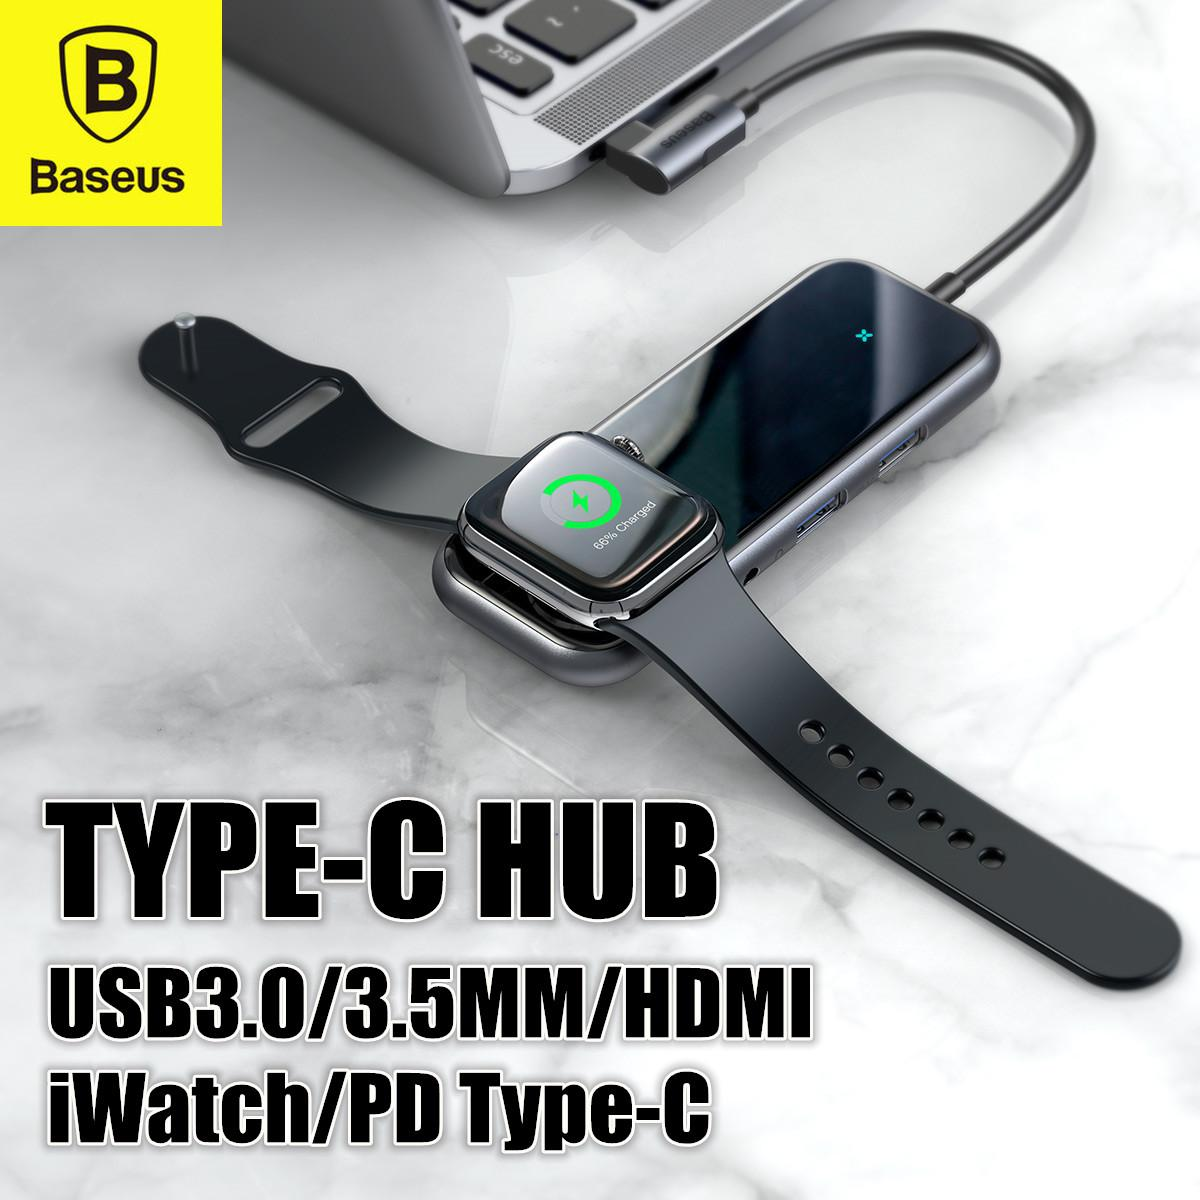 Baseus Mirror Type-C to 2 x USB3.0 + HDMI + Audio + PD + iWatch wireless charger Type-C HUB Adapter Convertor